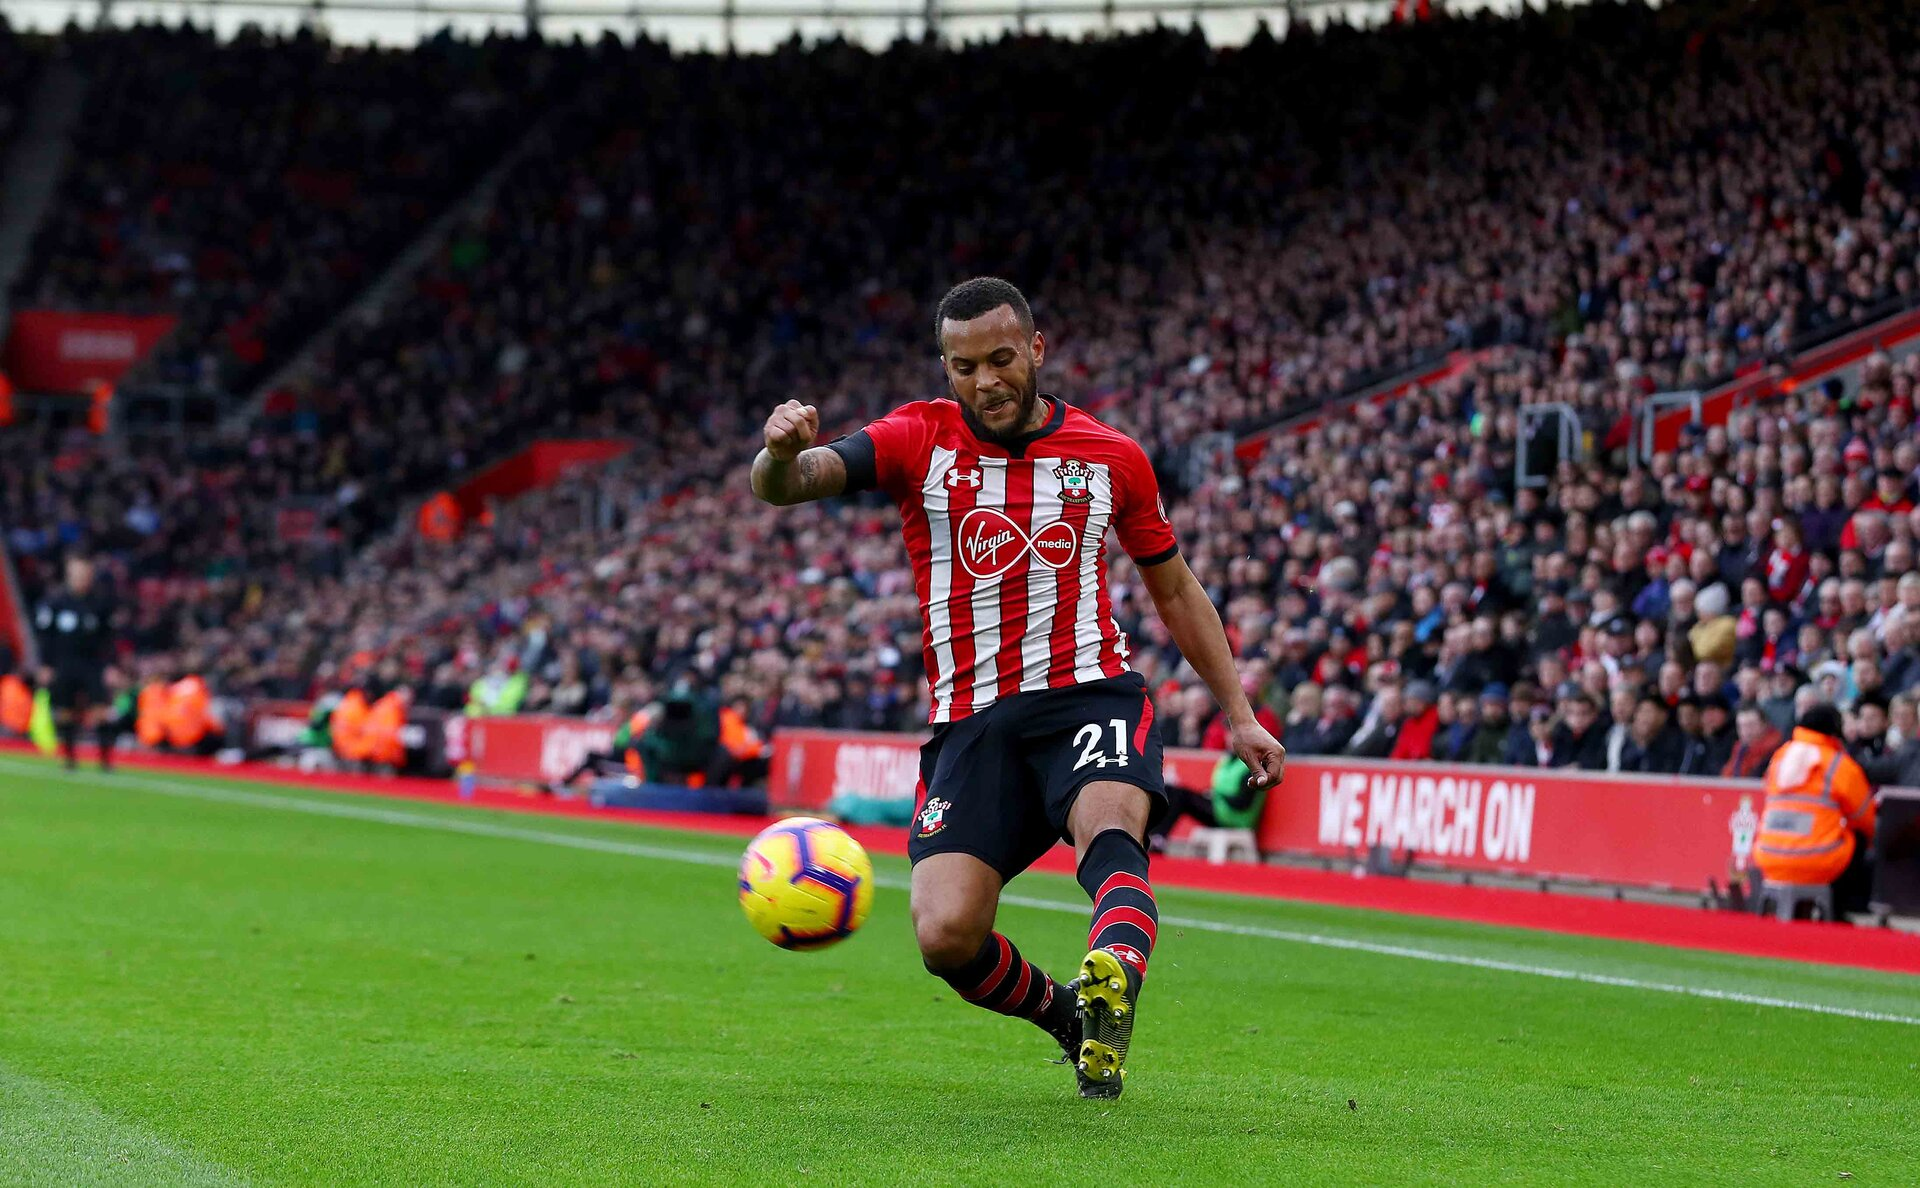 SOUTHAMPTON, ENGLAND - FEBRUARY 09: Ryan Bertrand of Southampton during the Premier League match between Southampton FC and Cardiff City at St Mary's Stadium on February 09, 2019 in Southampton, United Kingdom. (Photo by Matt Watson/Southampton FC via Getty Images)